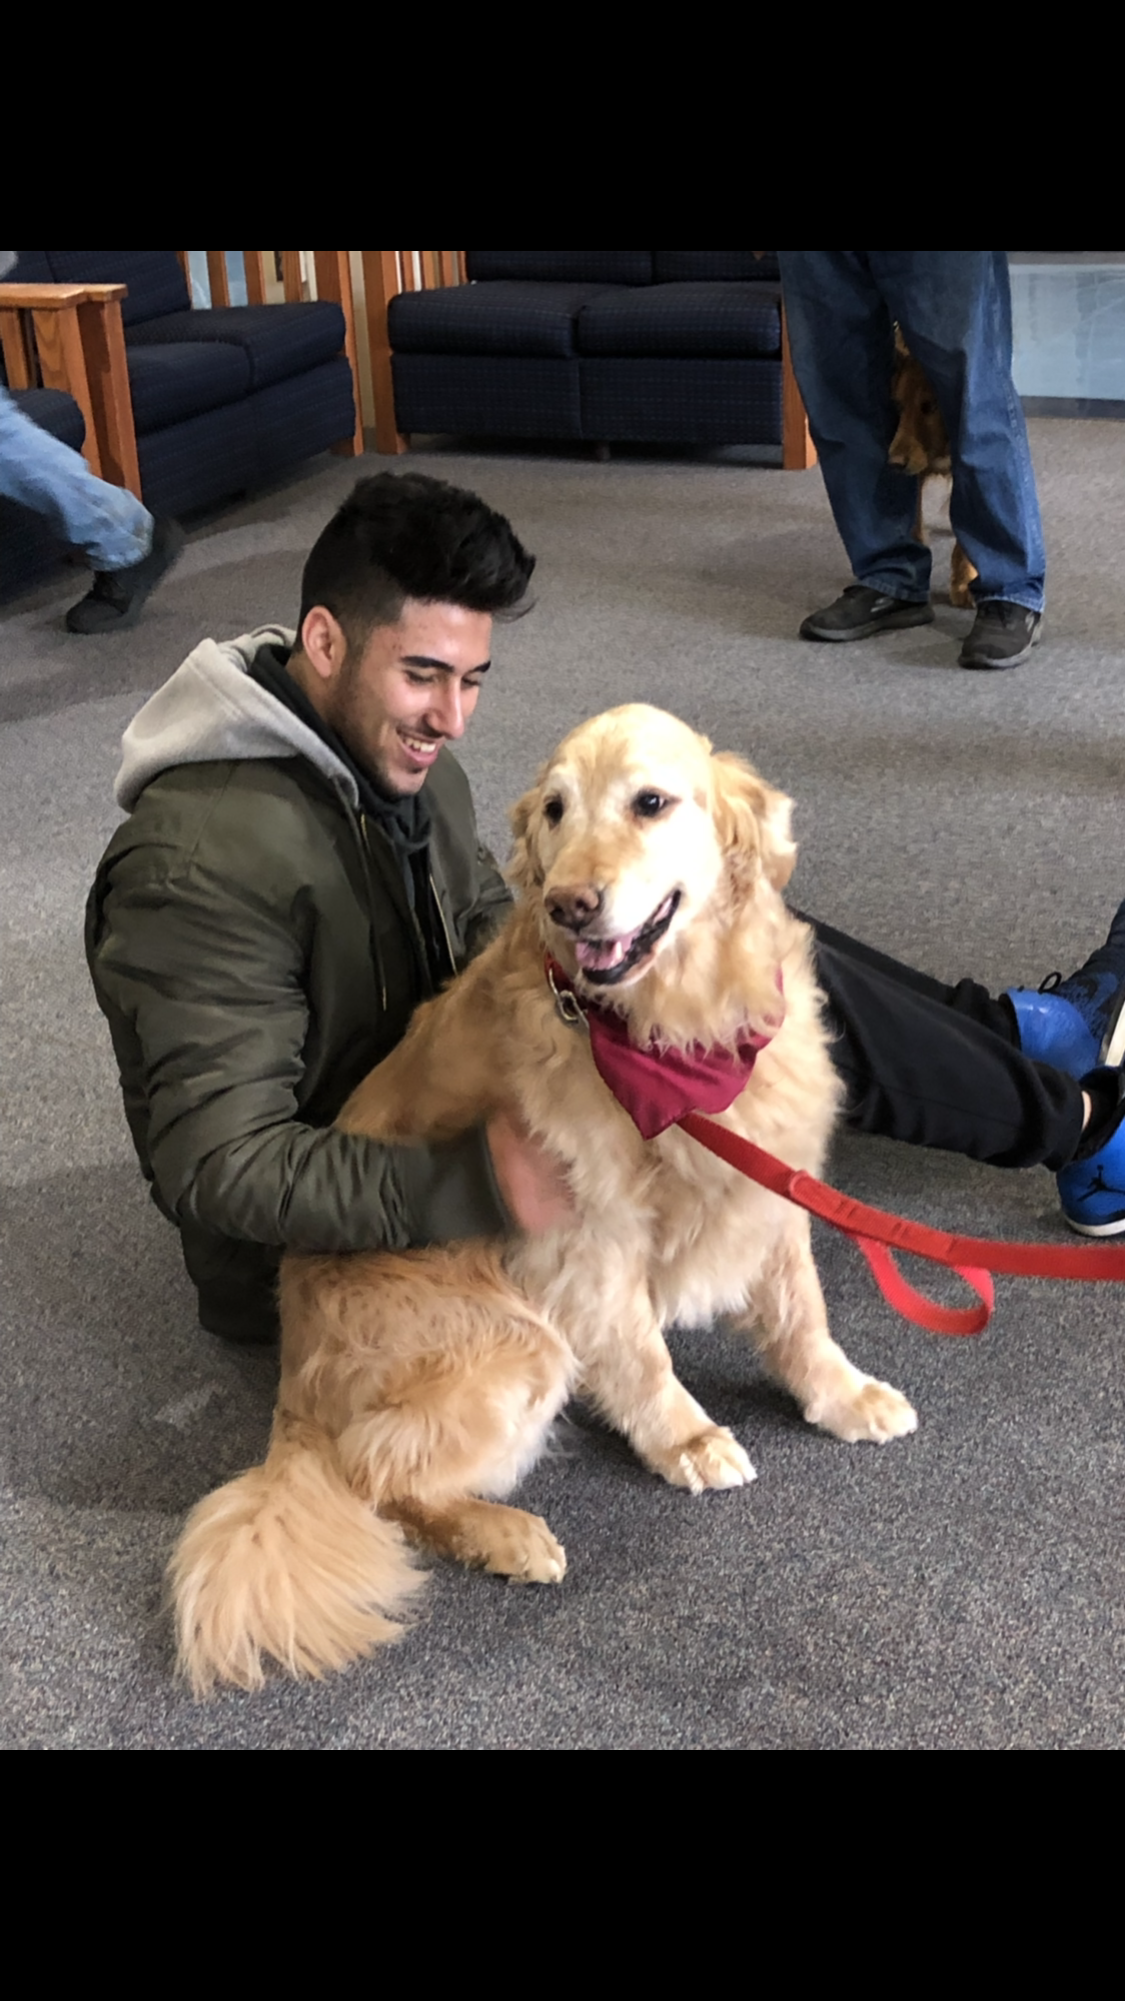 Stress Free Zone featuring: Therapy Dogs